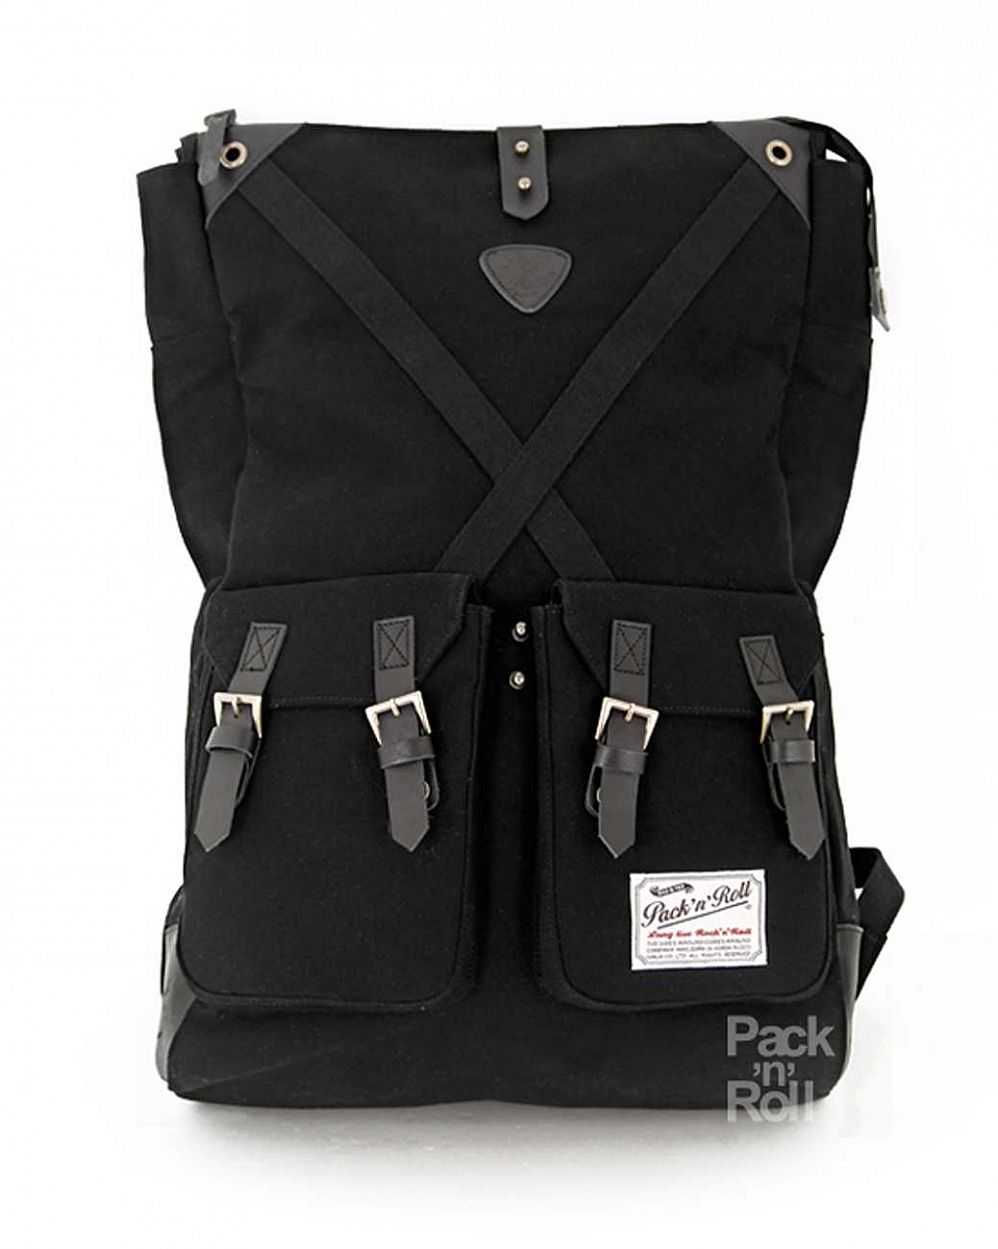 купить Рюкзак Pack n Roll Factor Backpack 25 oz canvas/lleather Black в Москве